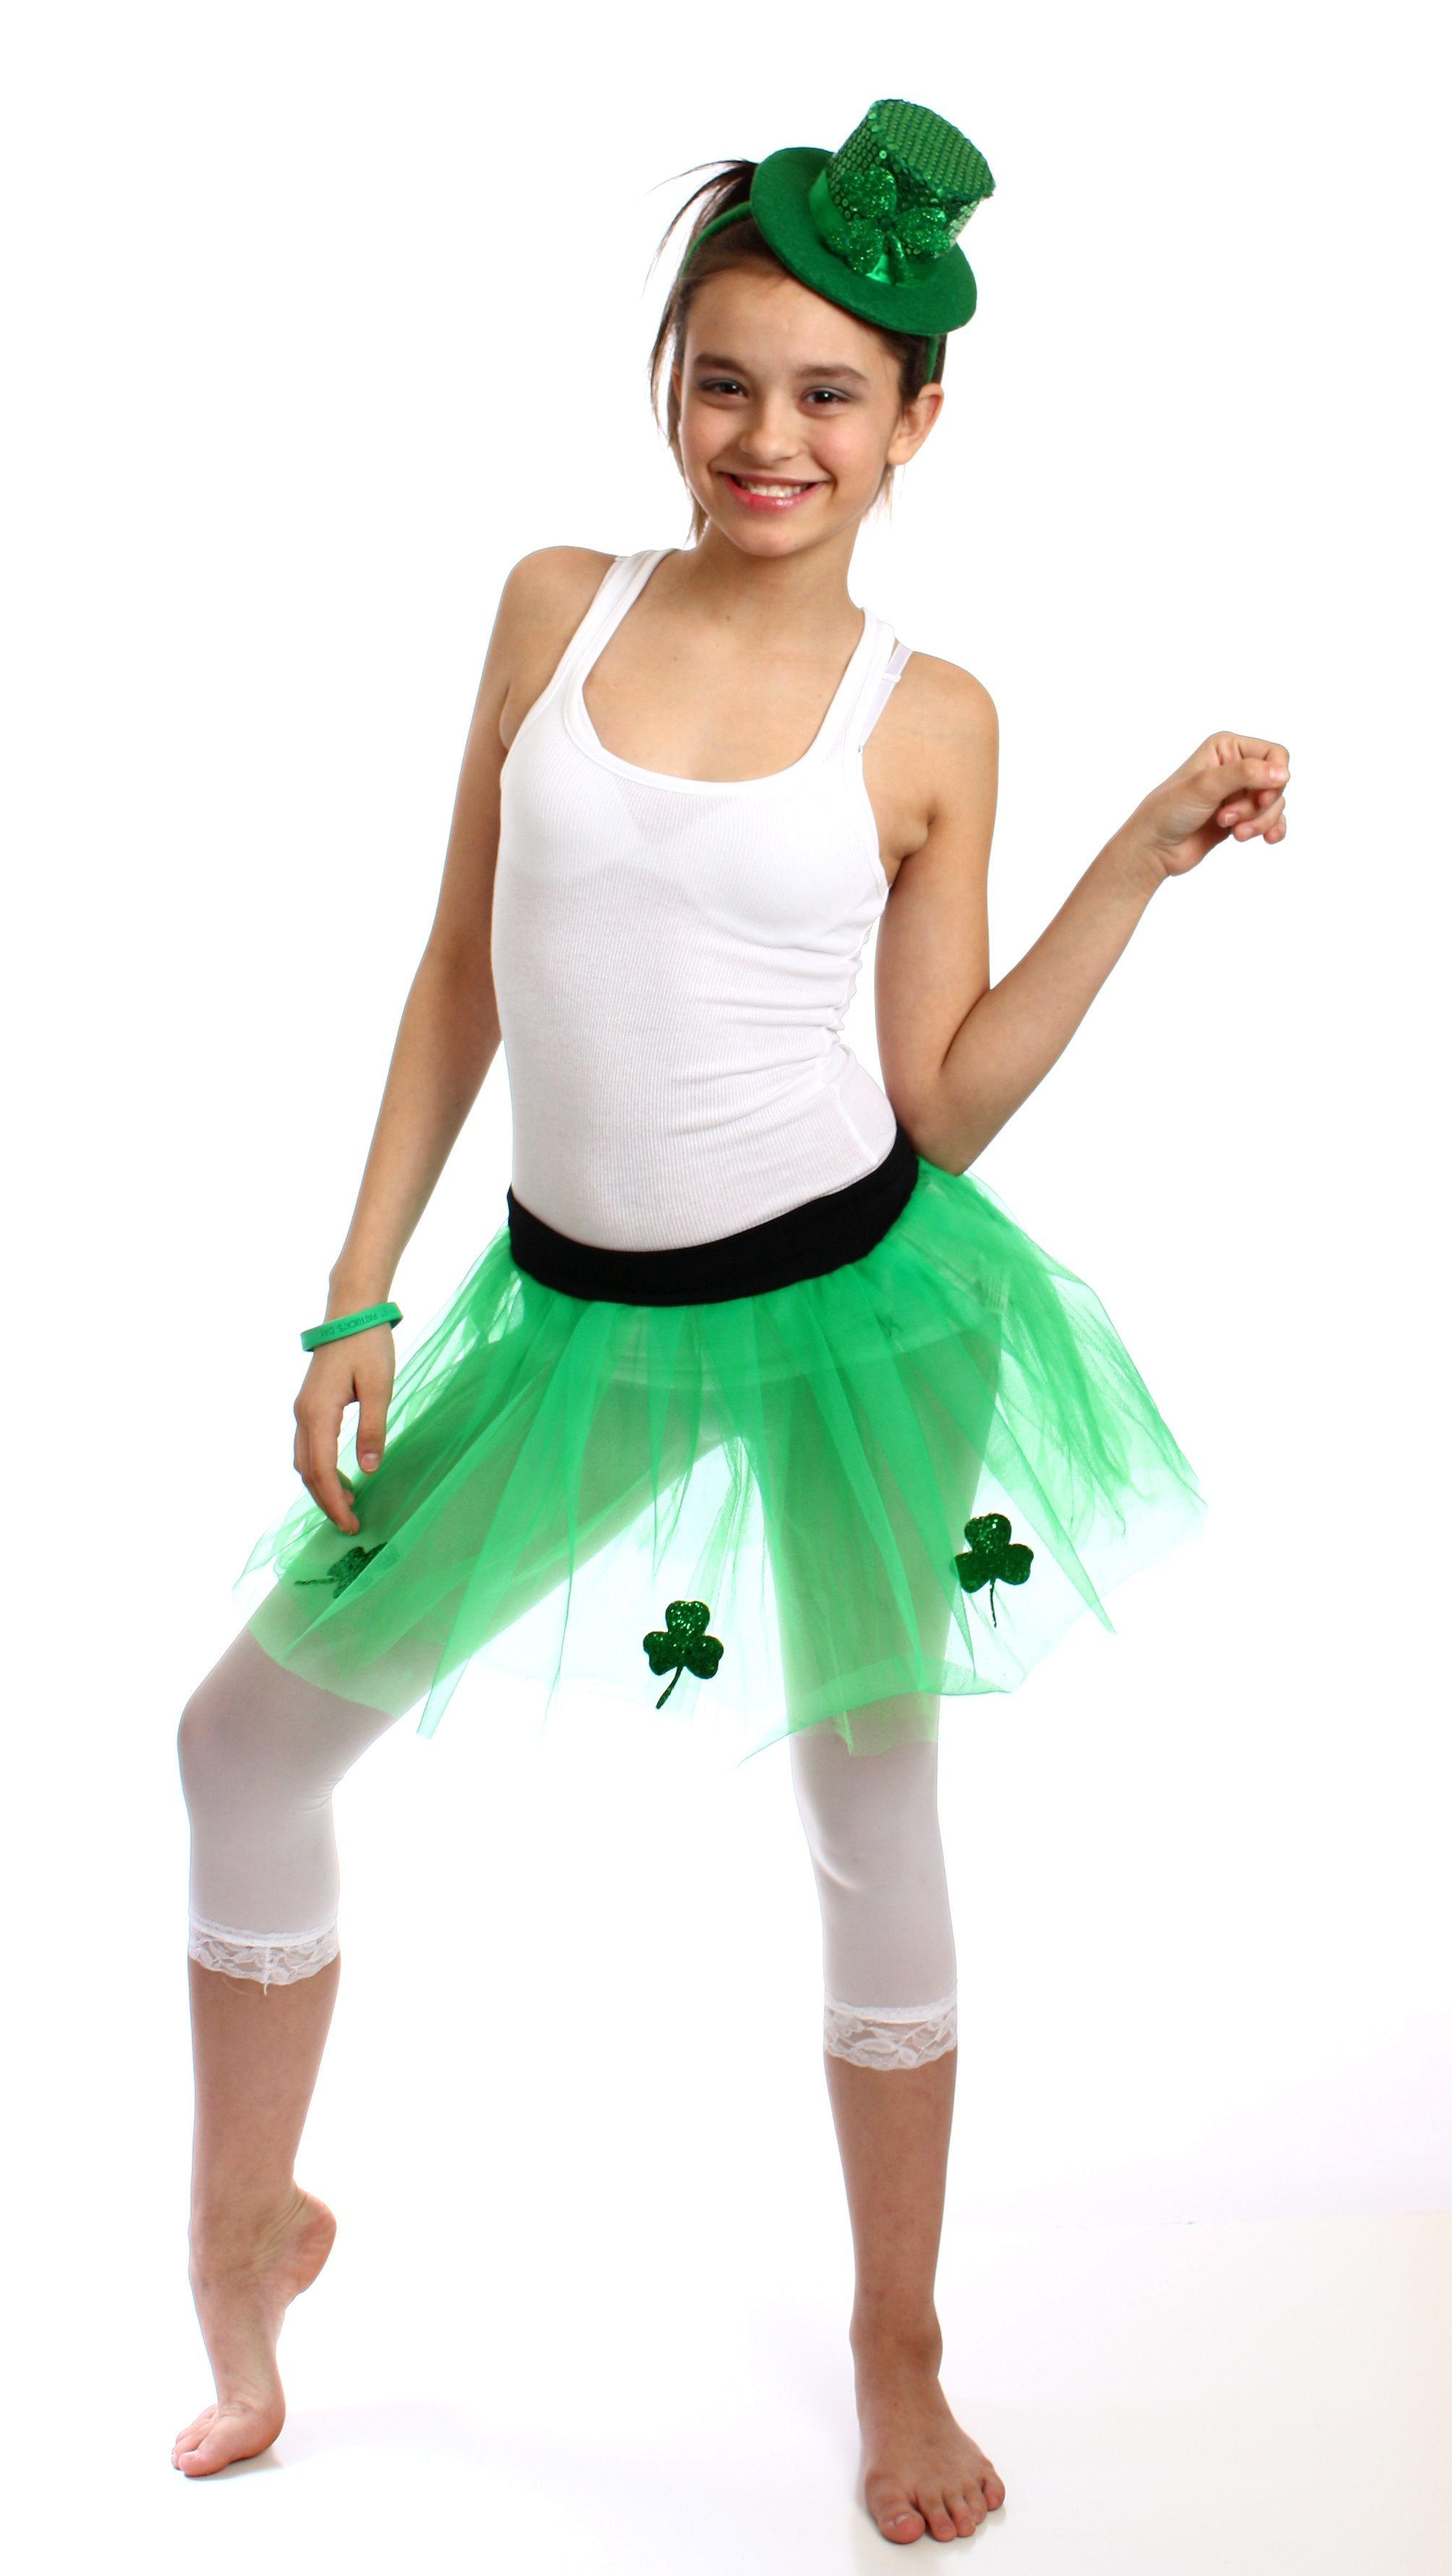 A girl dressed for saint patrick's day photo